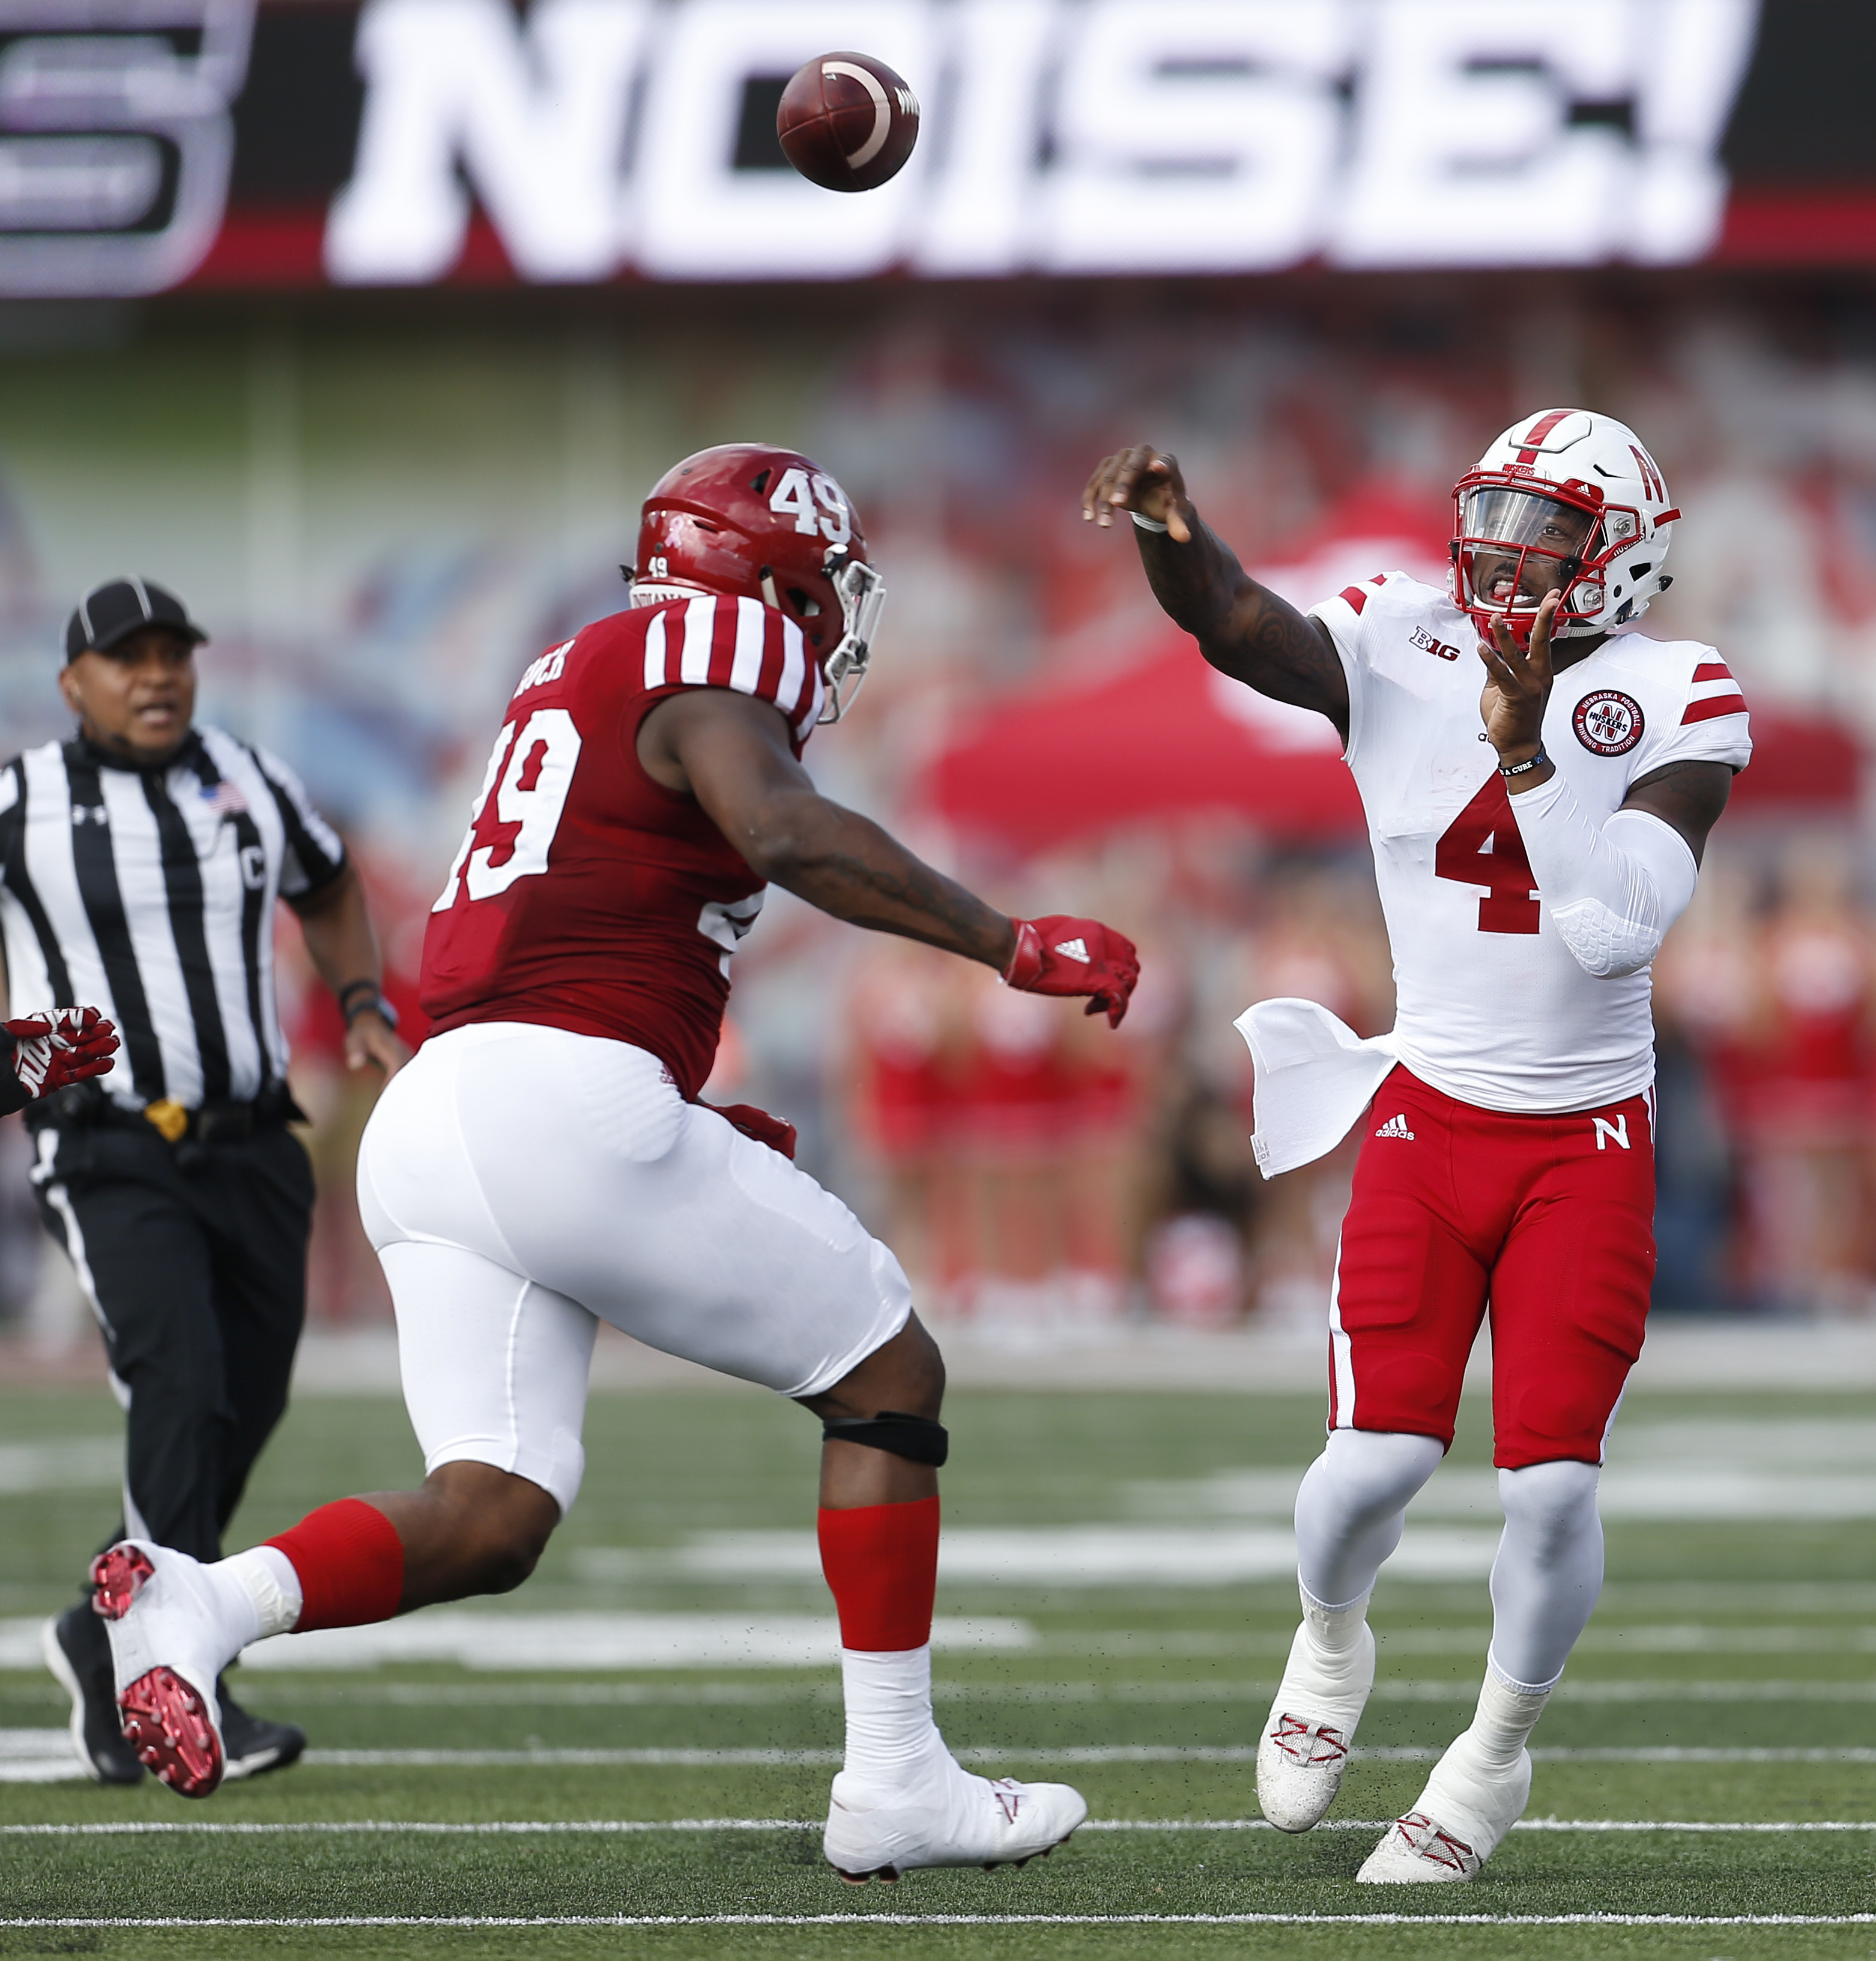 Nebraska quarterback Tommy Armstrong Jr. (4) throws under pressure from Indiana defensive lineman Greg Gooch (49) during the first half of an NCAA college football game in Bloomington, Ind., Saturday, Oct. 15, 2016. (AP Photo/Sam Riche)